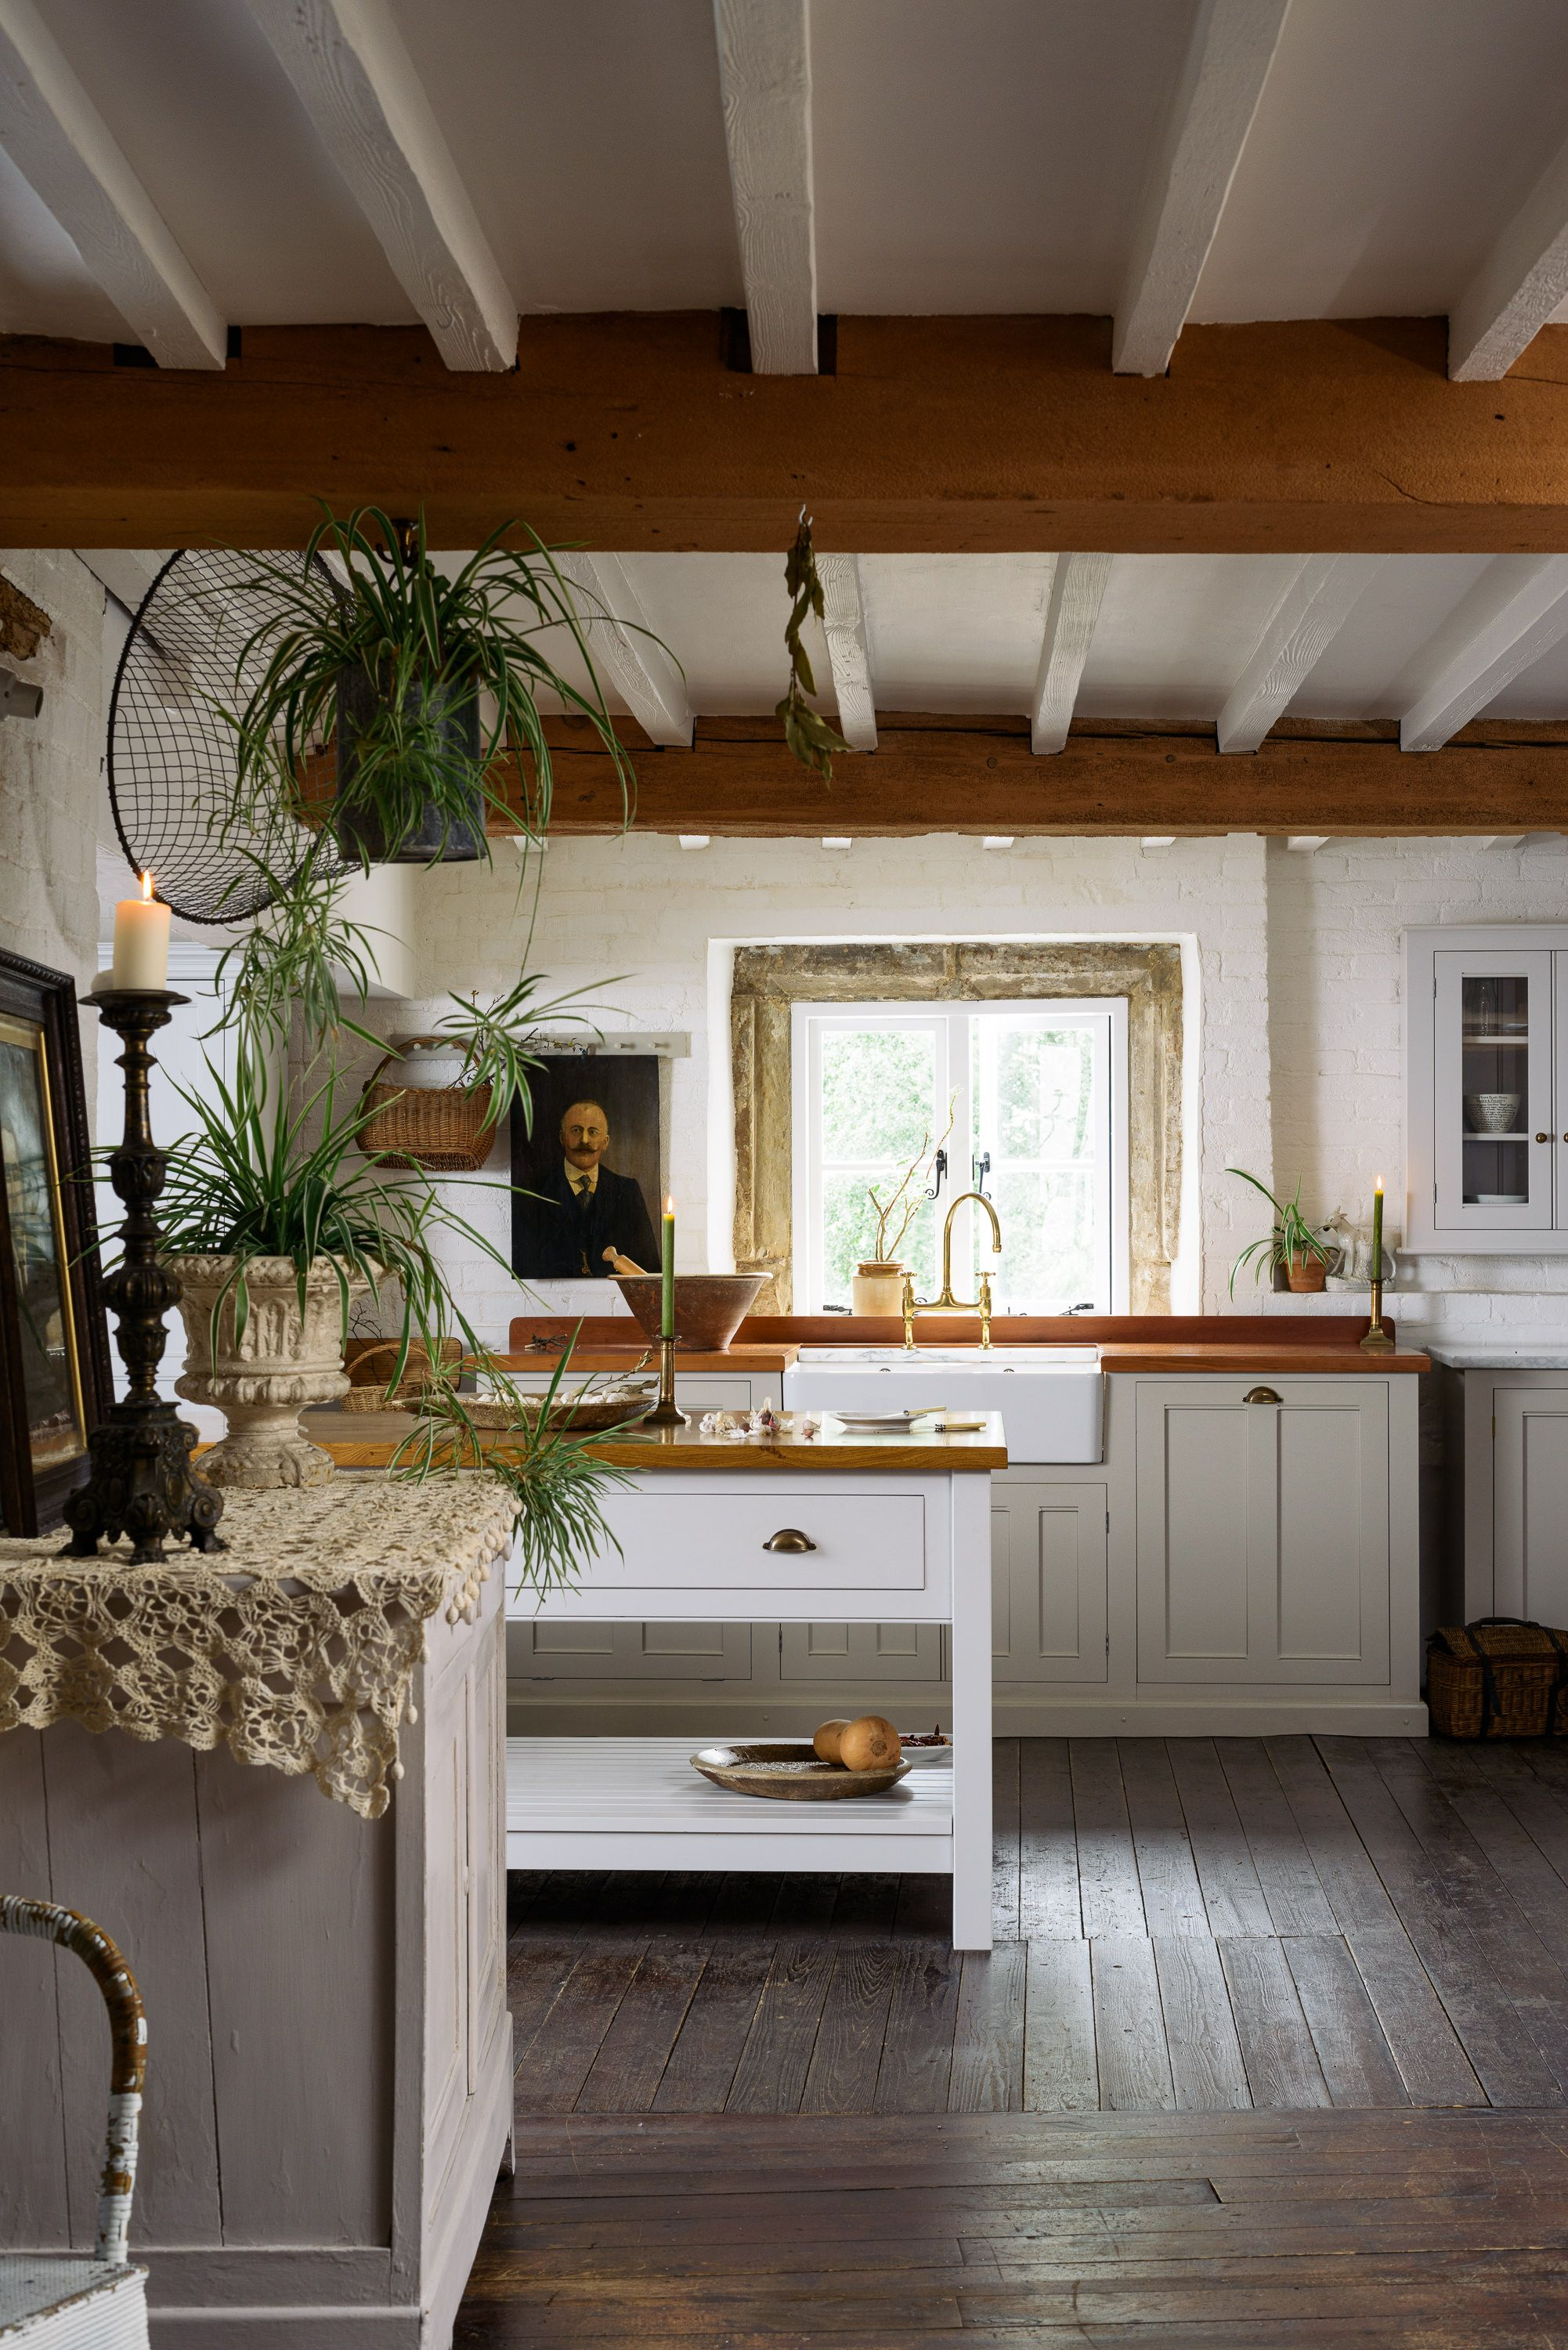 A country kitchen with wooden floors and original beams #countrykitchens